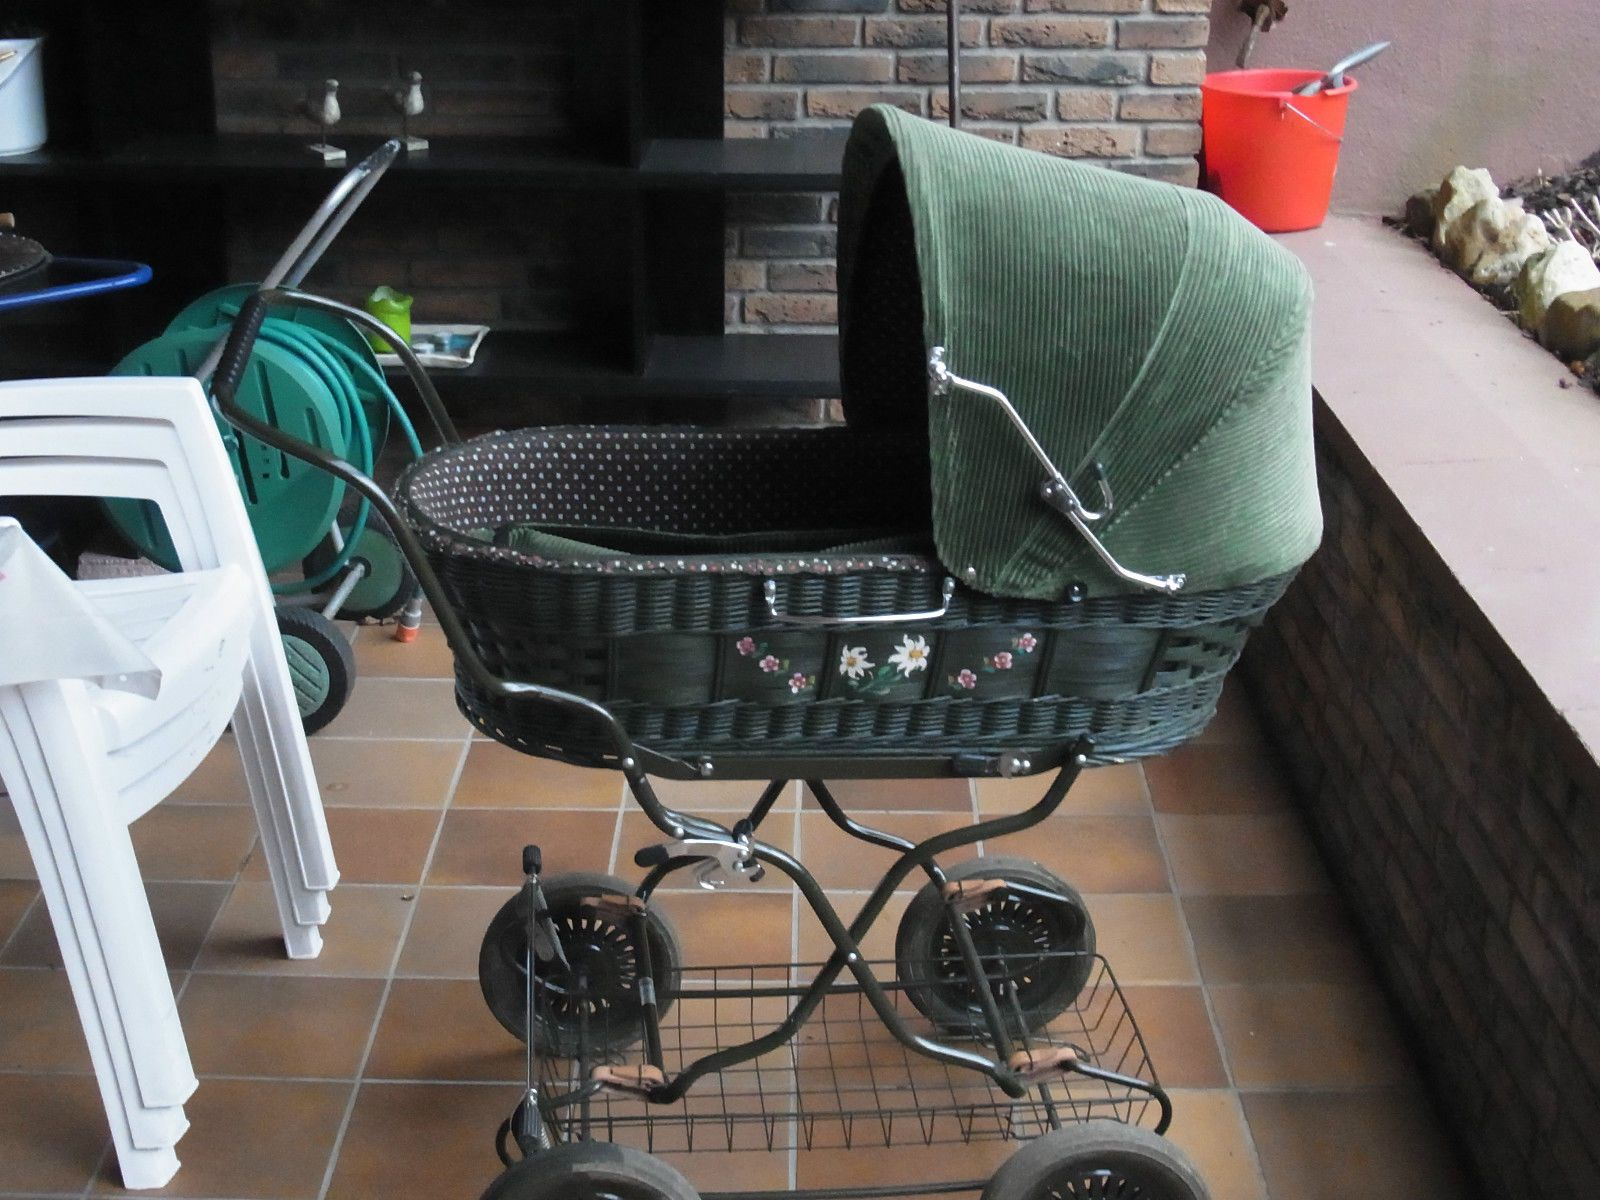 knorr nostalgie kinderwagen 1982 traumhafter korb kinderwagen cord kord retro in baby. Black Bedroom Furniture Sets. Home Design Ideas